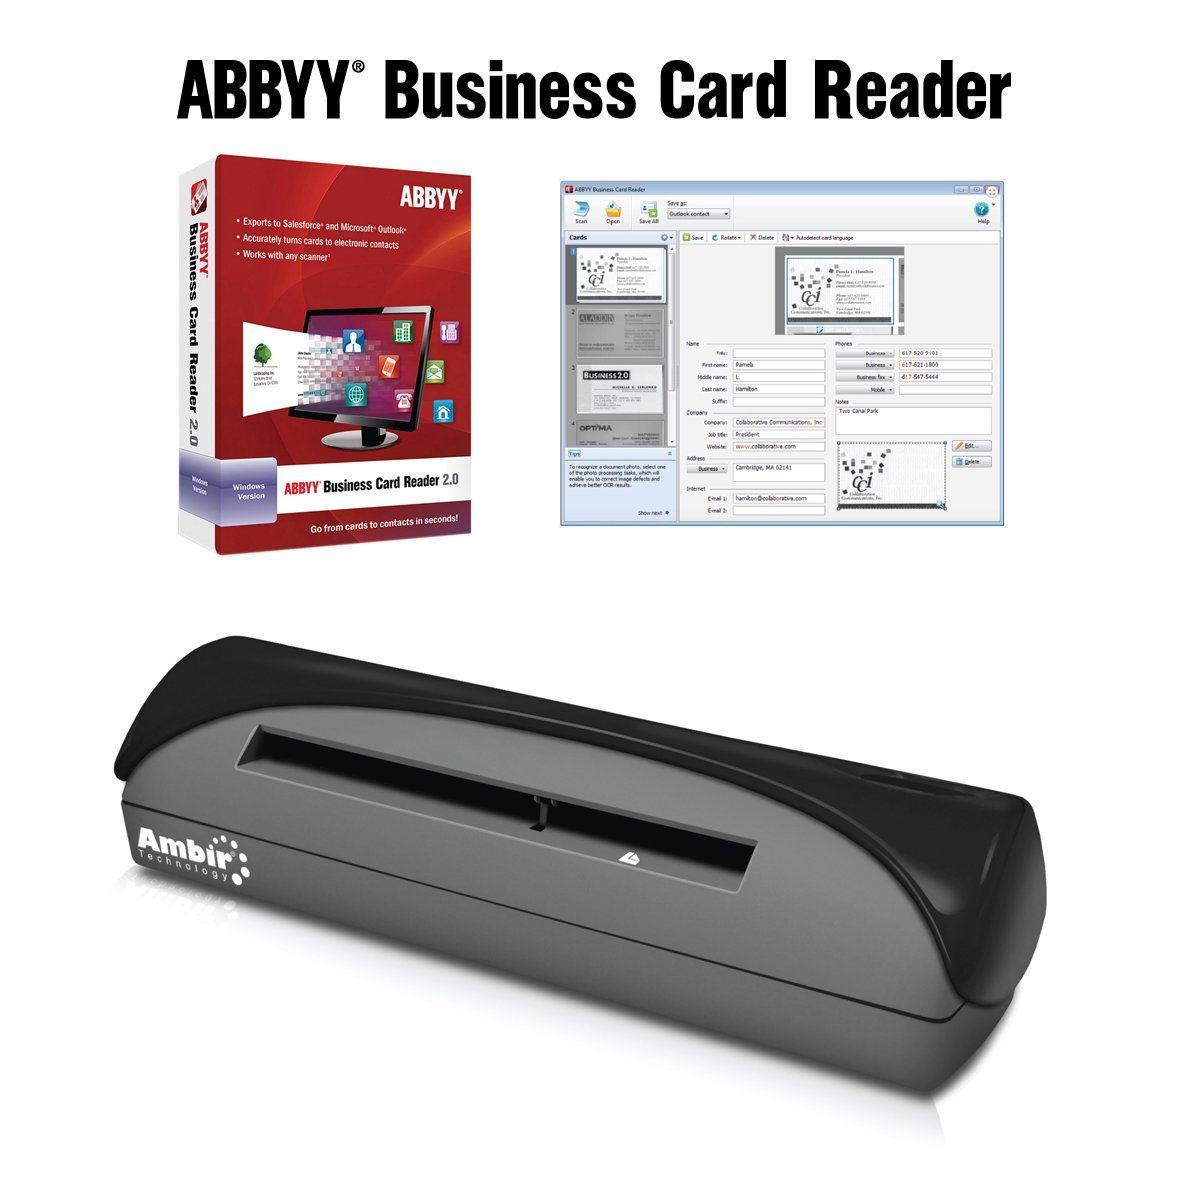 Amazon imagescan pro 667 wabbyy business card reader software amazon imagescan pro 667 wabbyy business card reader software electronics colourmoves